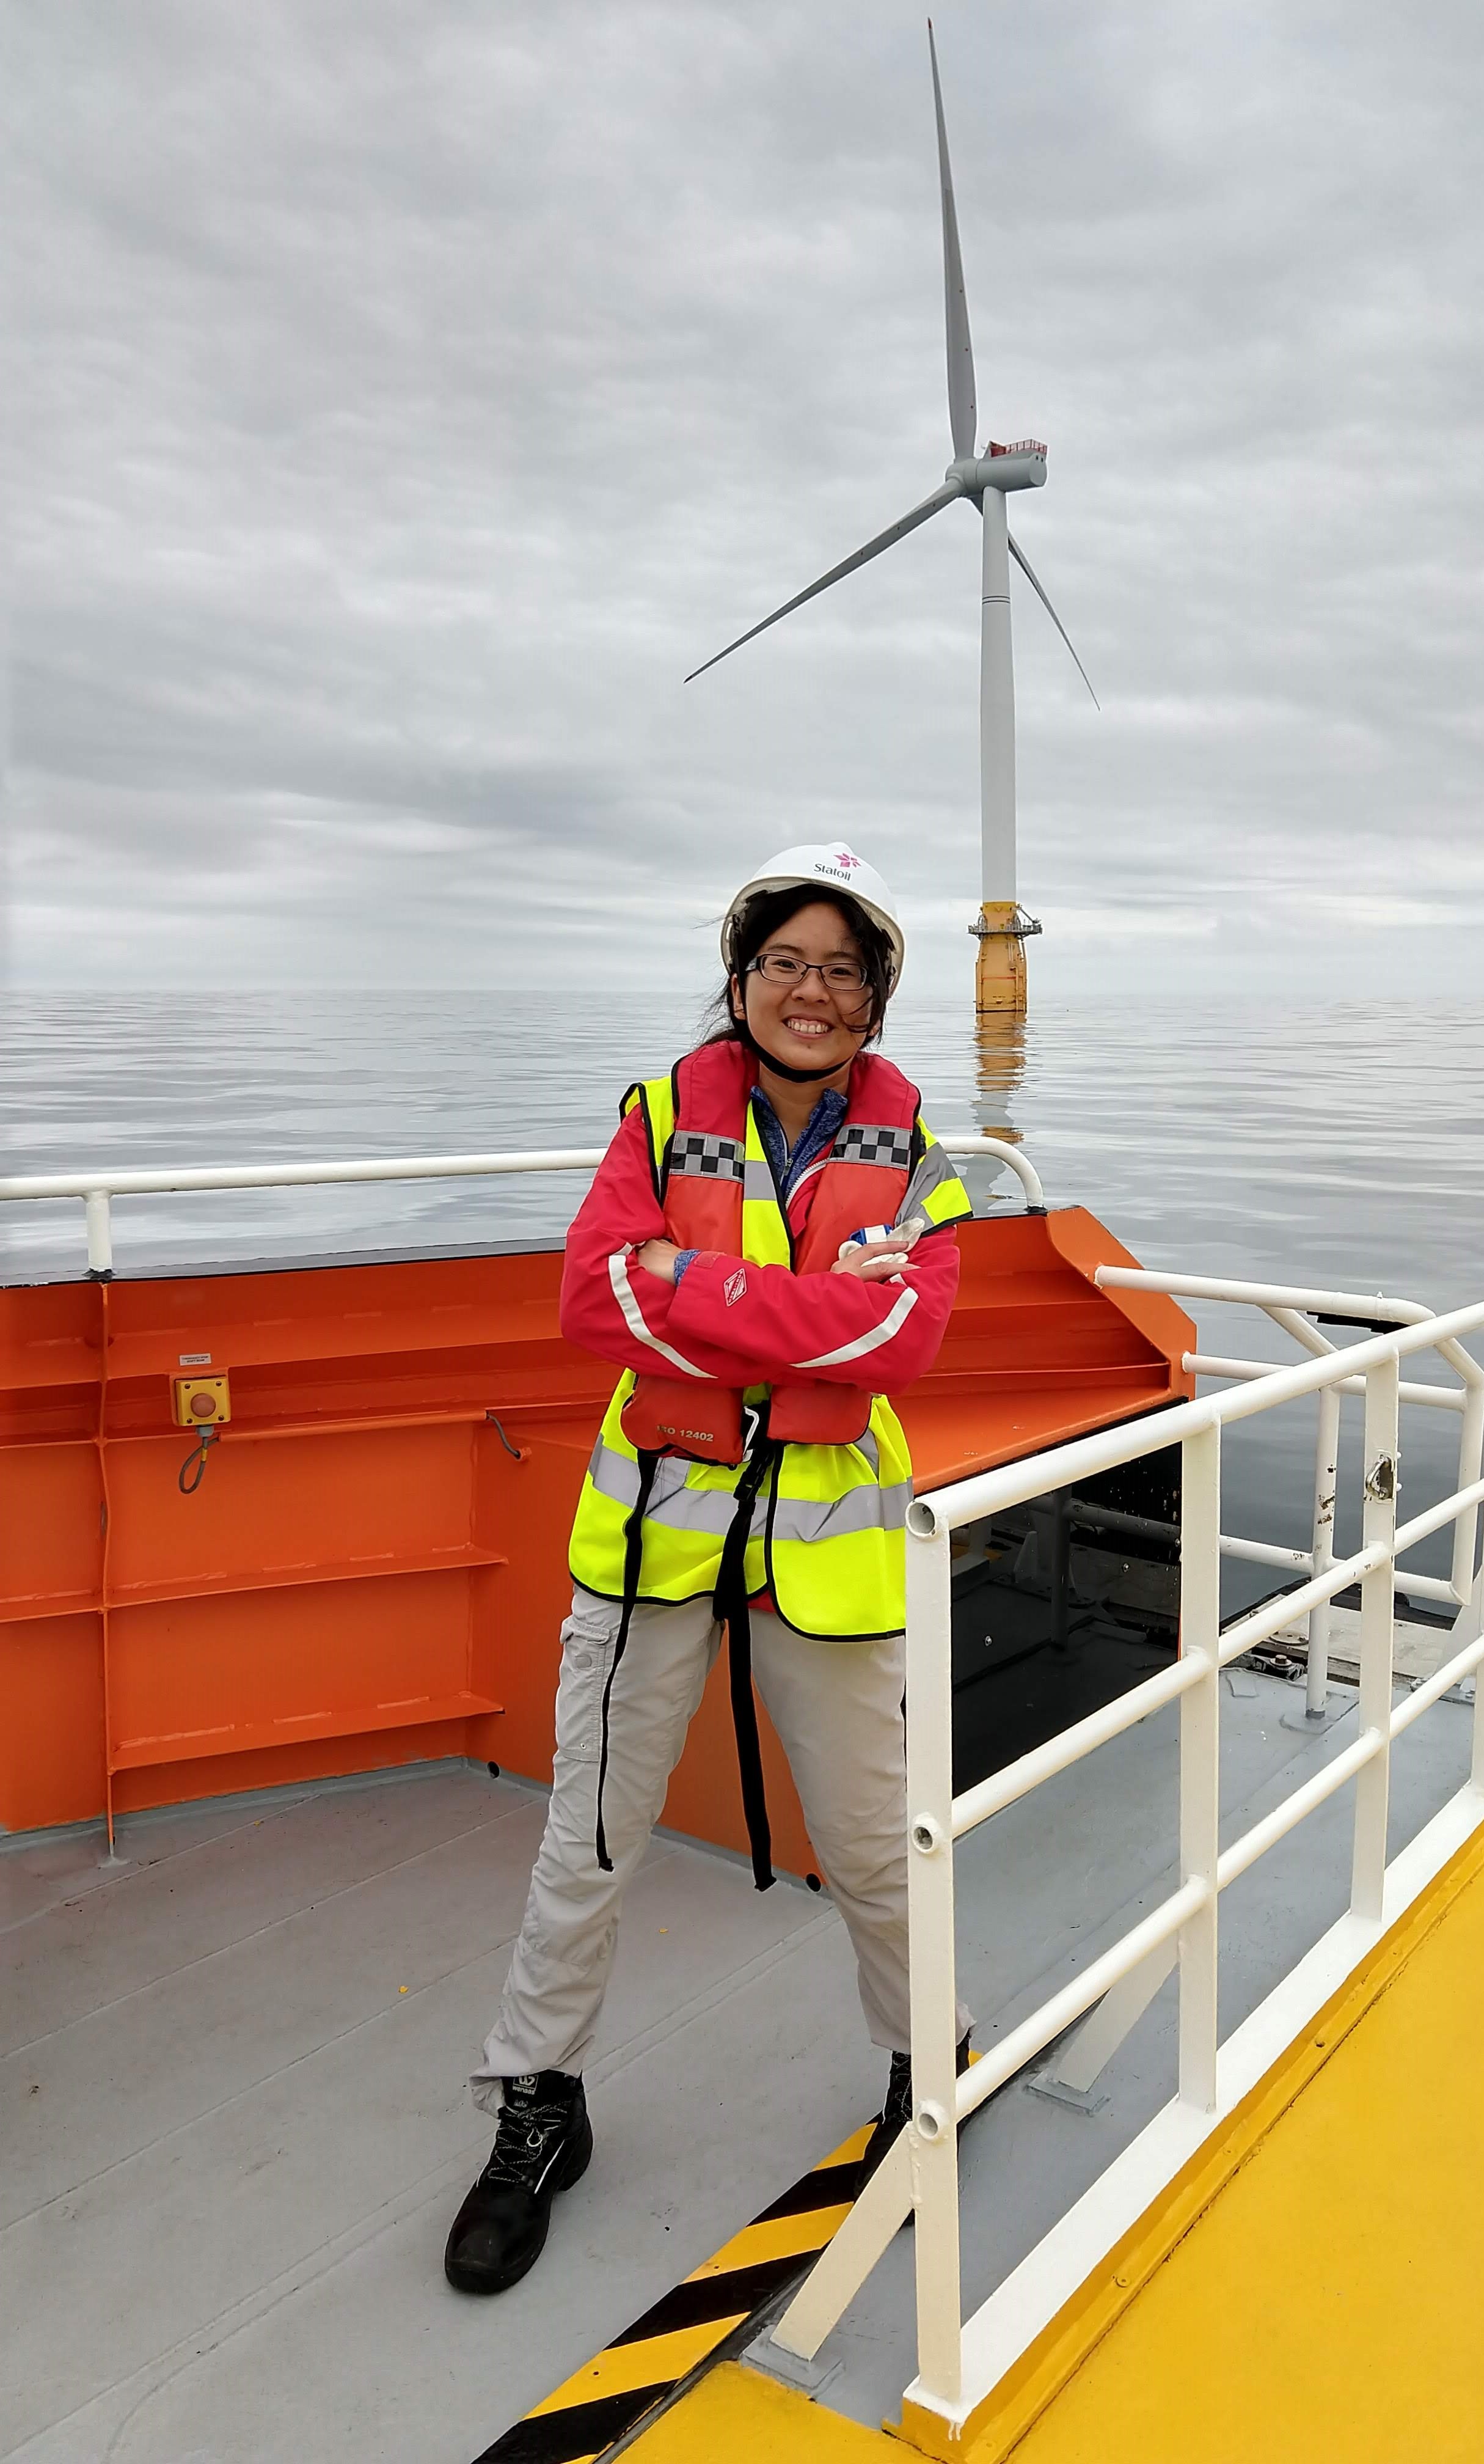 Researcher Yi-Hui Wang, in an orange life vest, on the deck of a boat in front of an offshore wind turbine